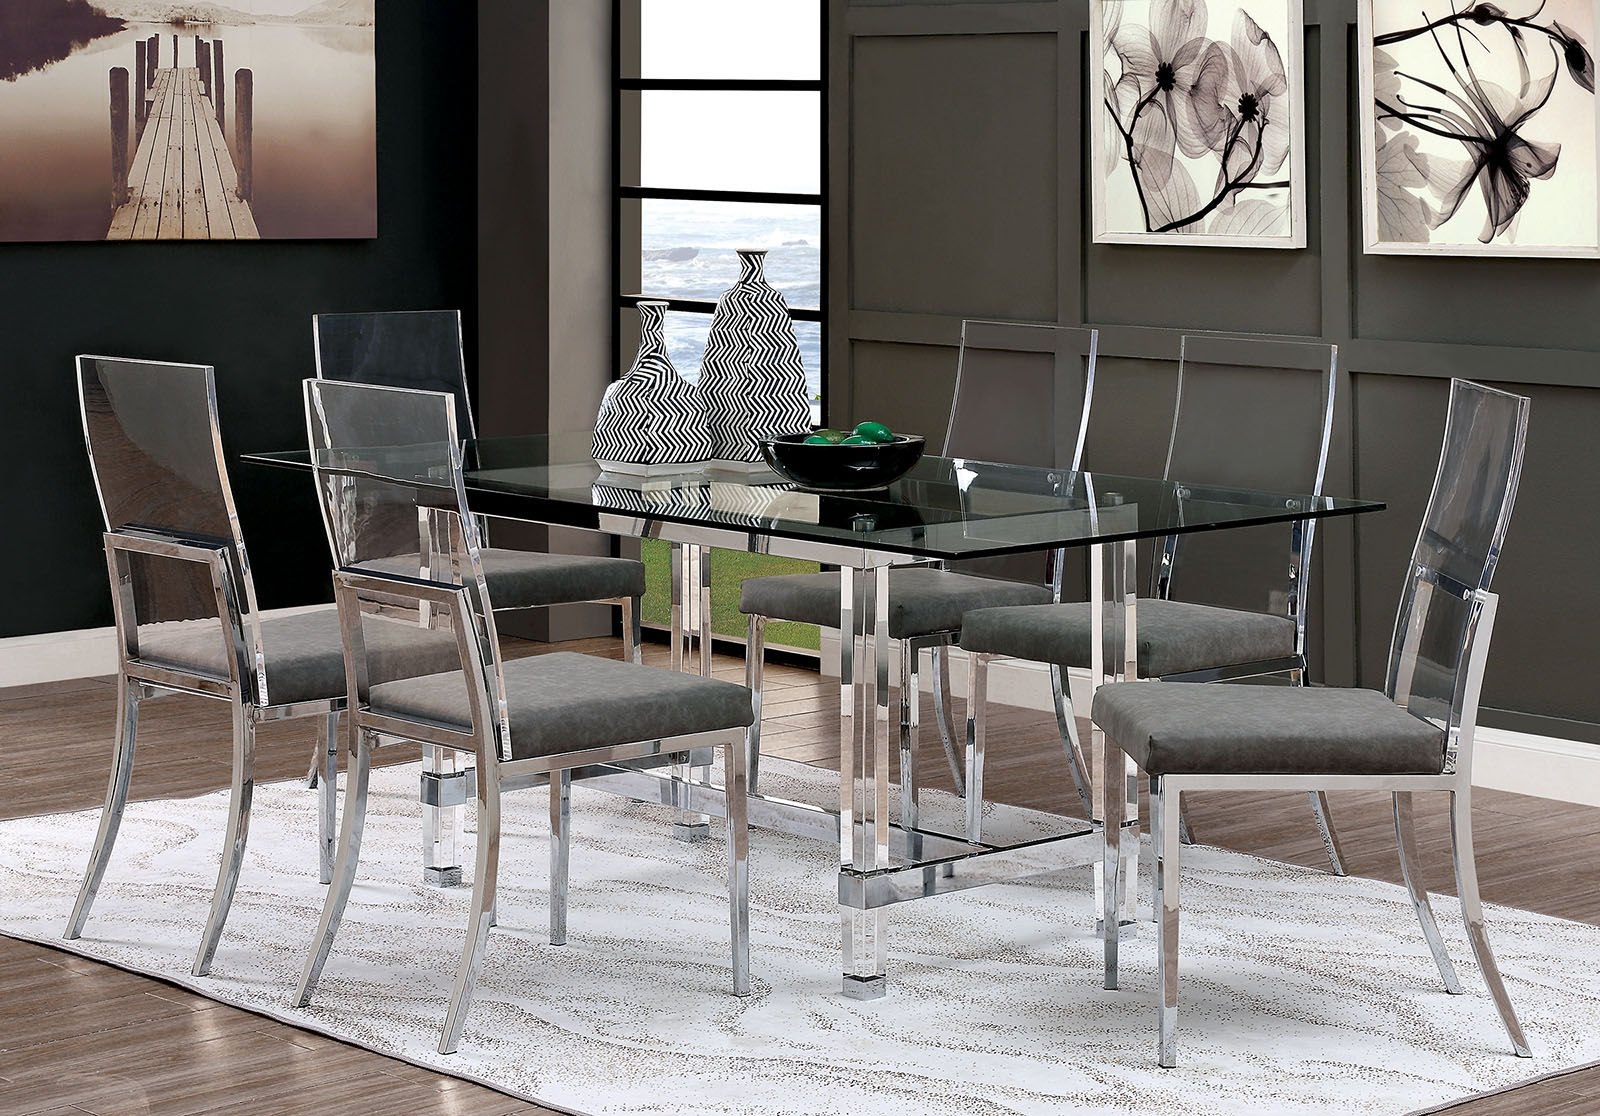 Casper Ultra Chic Chrome Acrylic Modern 5 Piece Dining Set By Furniture Of America